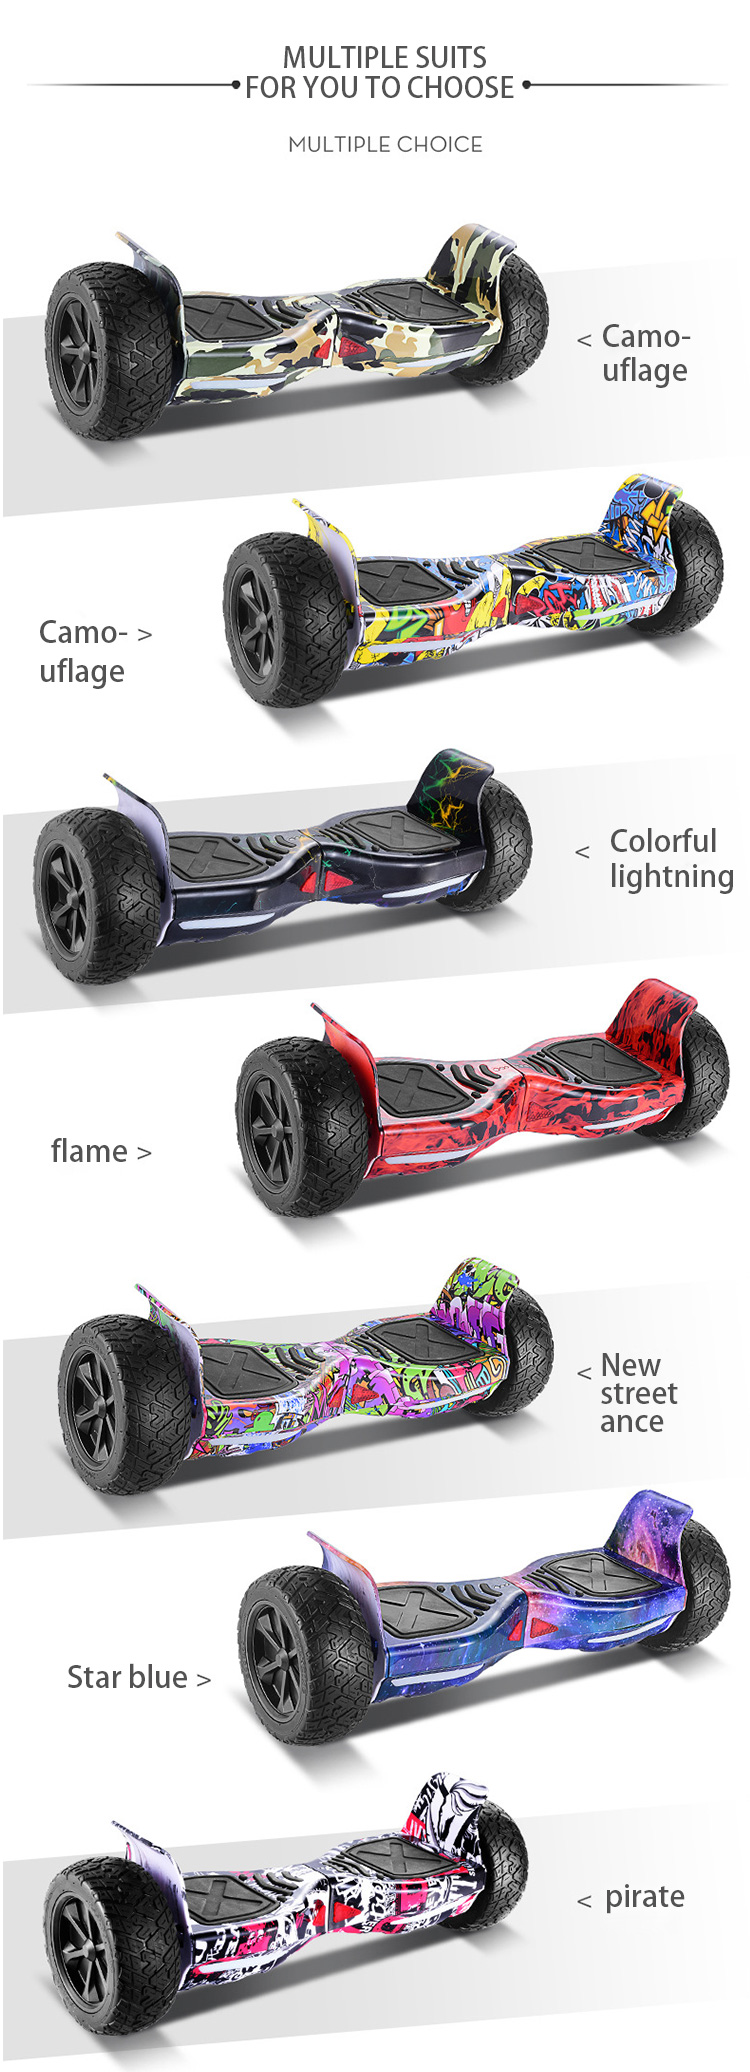 2 Wheels Hoverboard Balance Electric Scooter Electric Chariot Self Balance Electronic Scooter Hover Board Off Road Hover Board